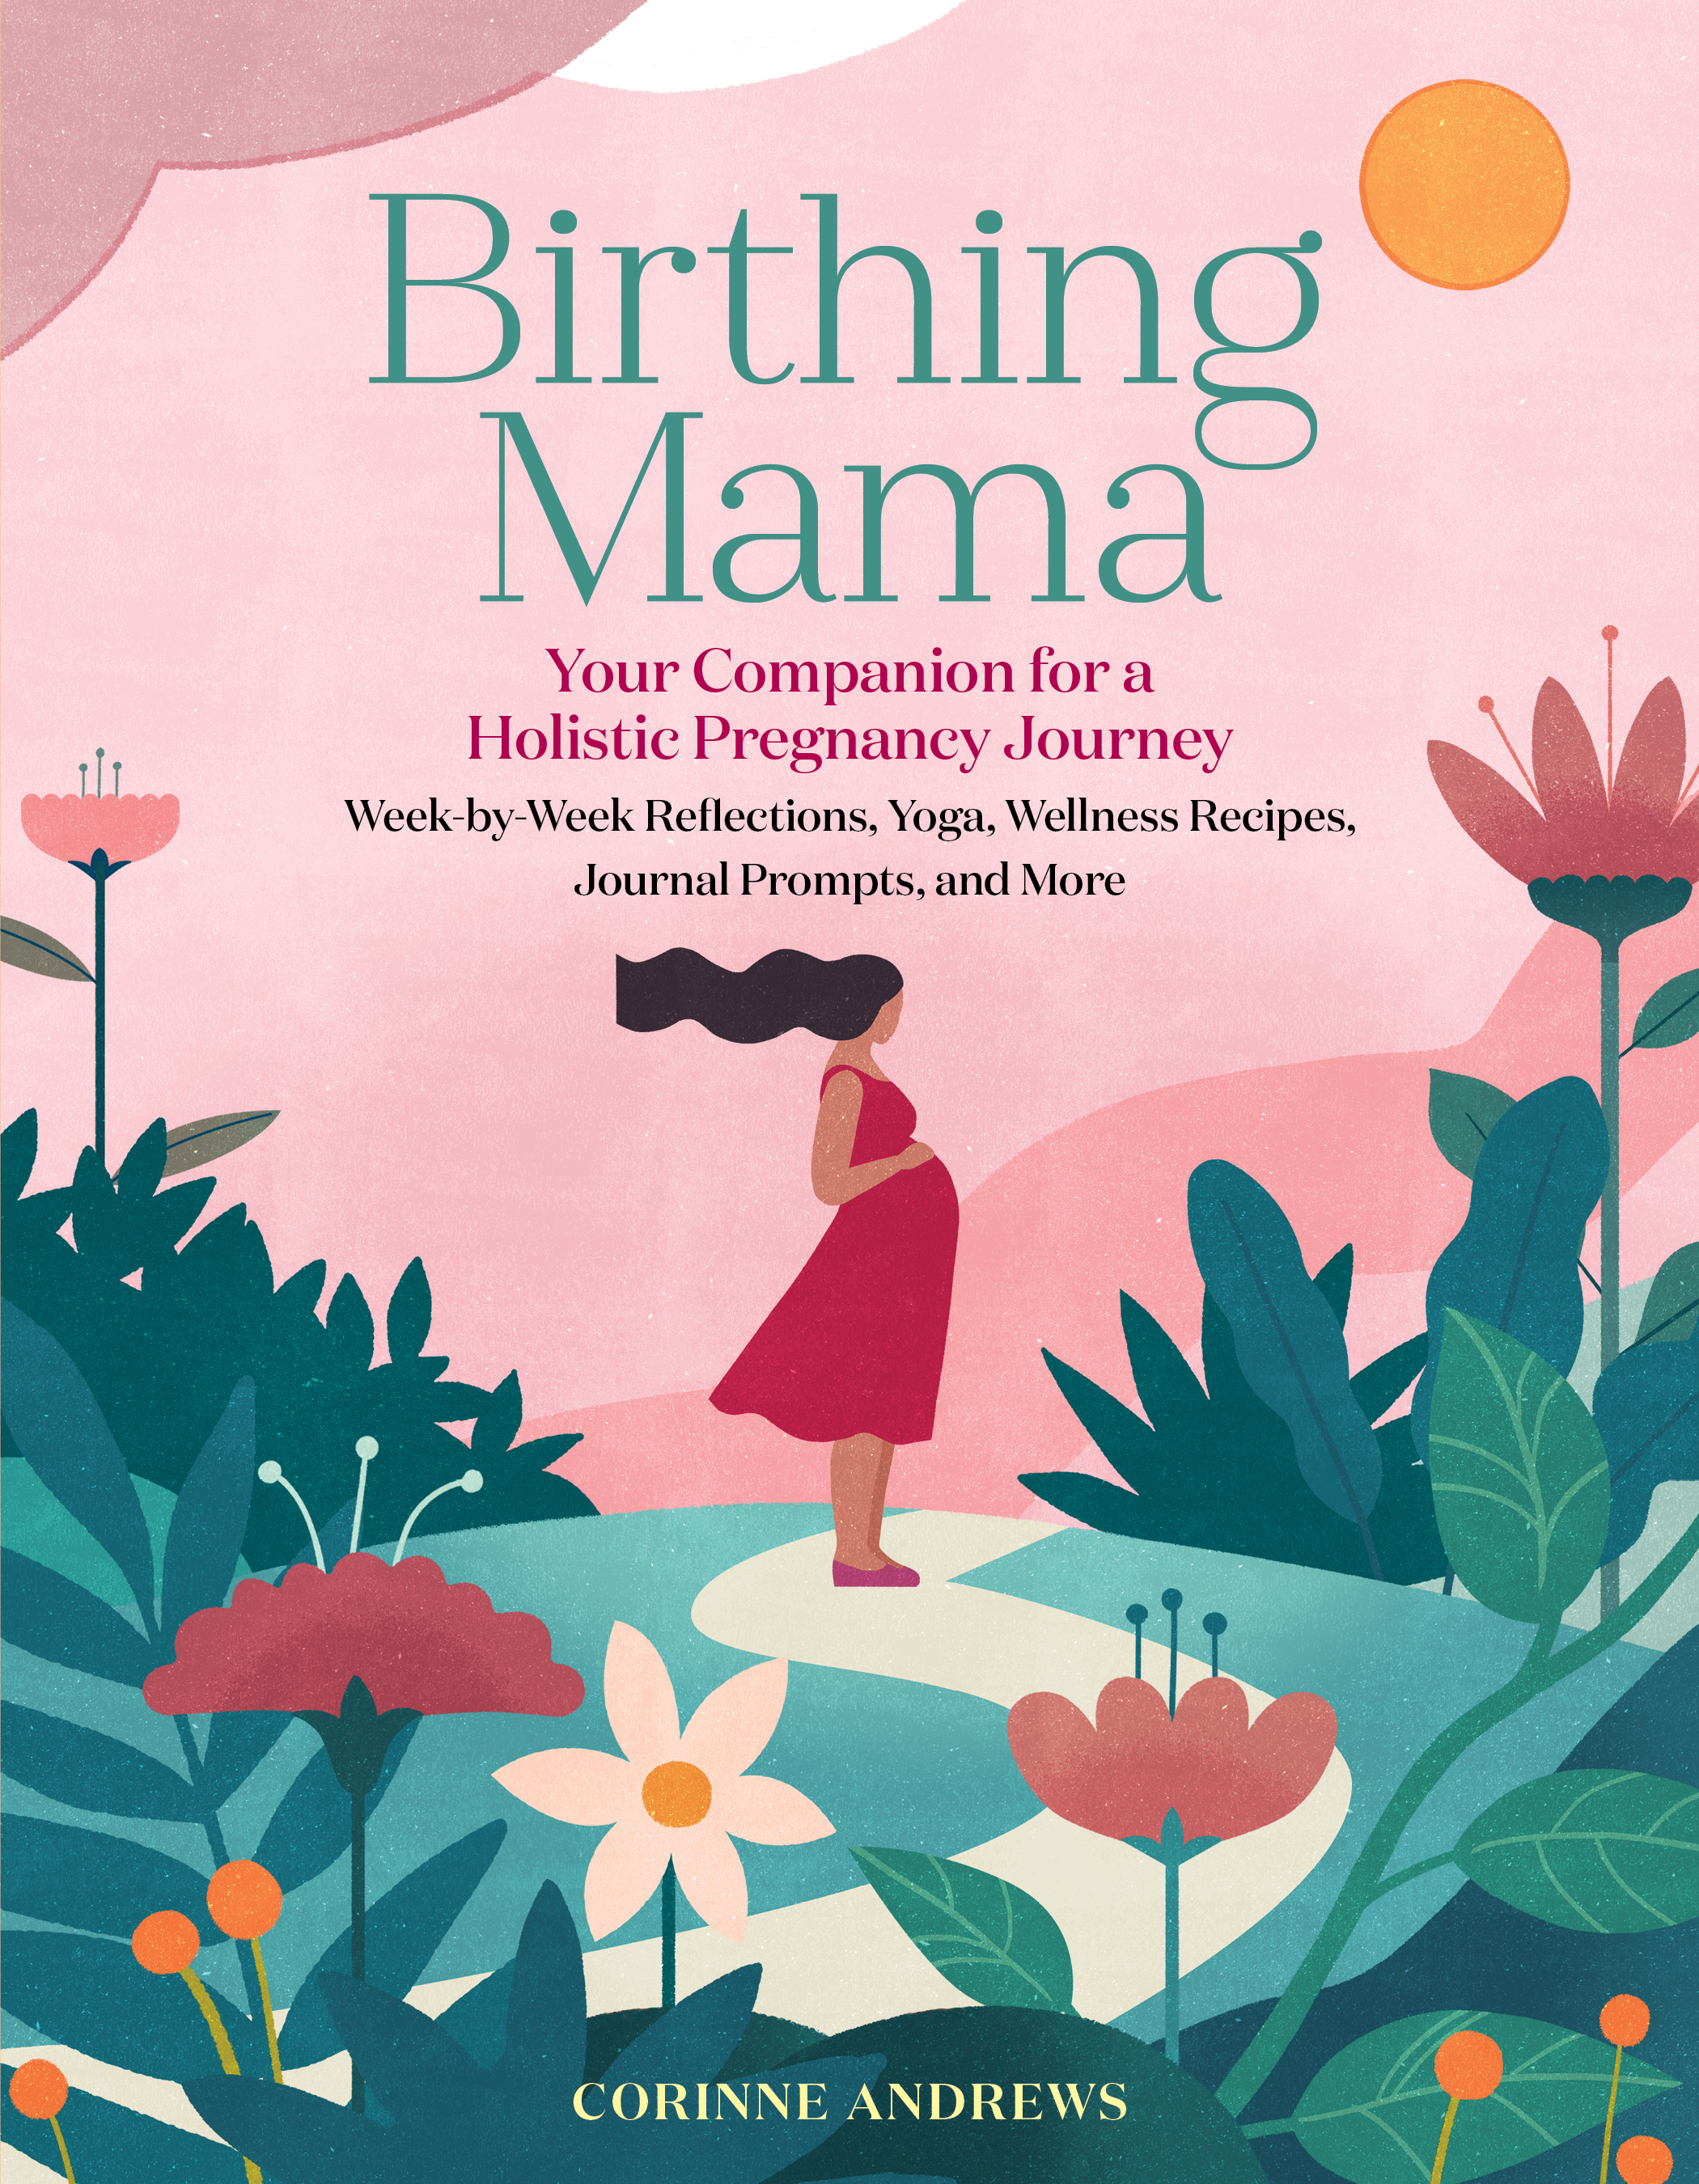 Birthing Mama Your Companion for a Holistic Pregnancy Journey with Week-by-Week Reflections, Yoga, Wellness Recipes, Journal Prompts, and More - Corinne Andrews